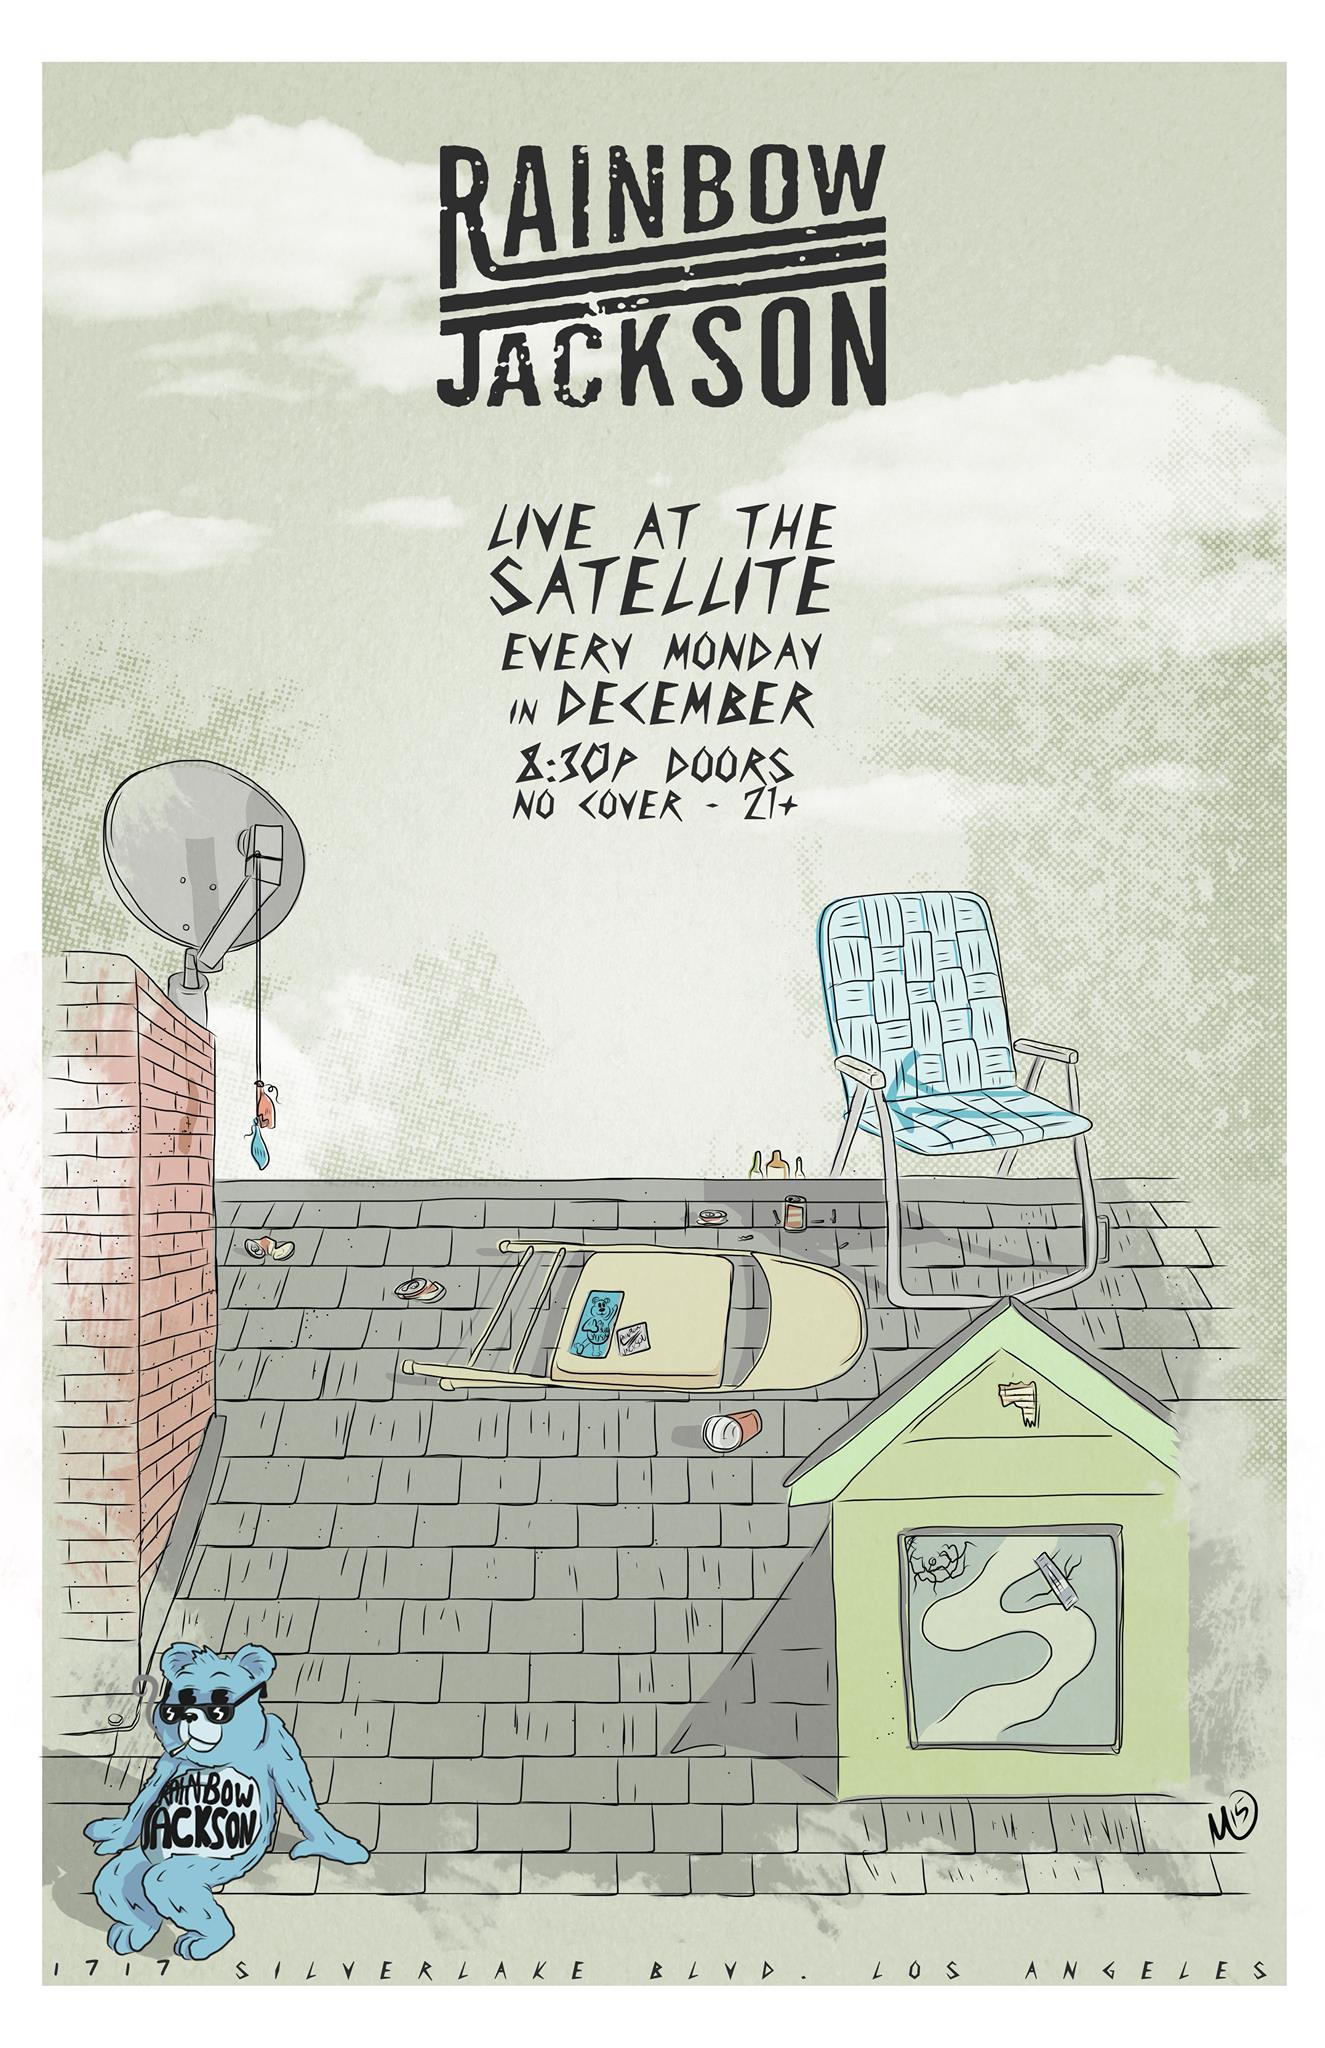 Monday Residency with Rainbow Jackson at The Satellite | © The Satellite